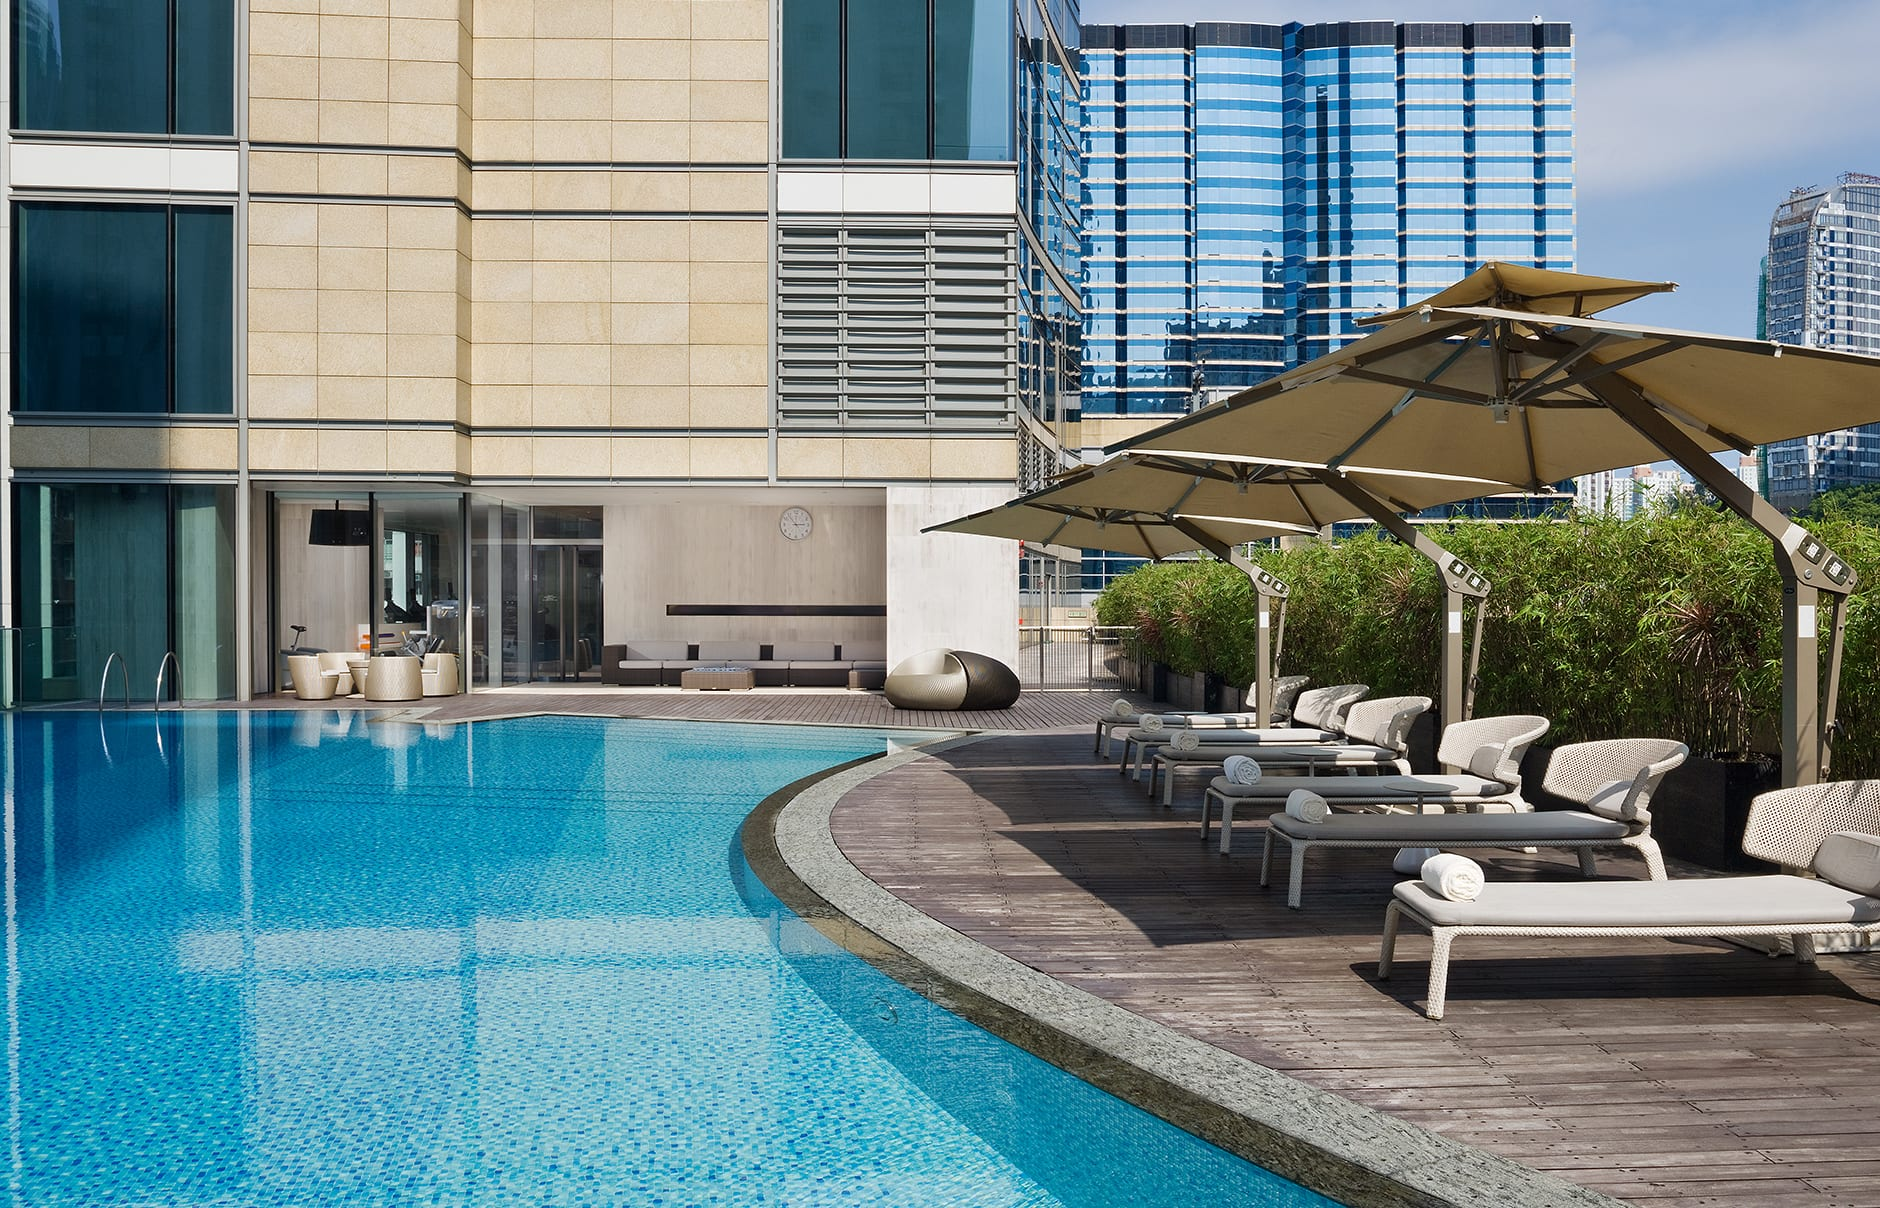 Beast pool. EAST Hong Kong, Hong Kong. Hotel Review by TravelPlusStyle. Photo © Swire Hotels